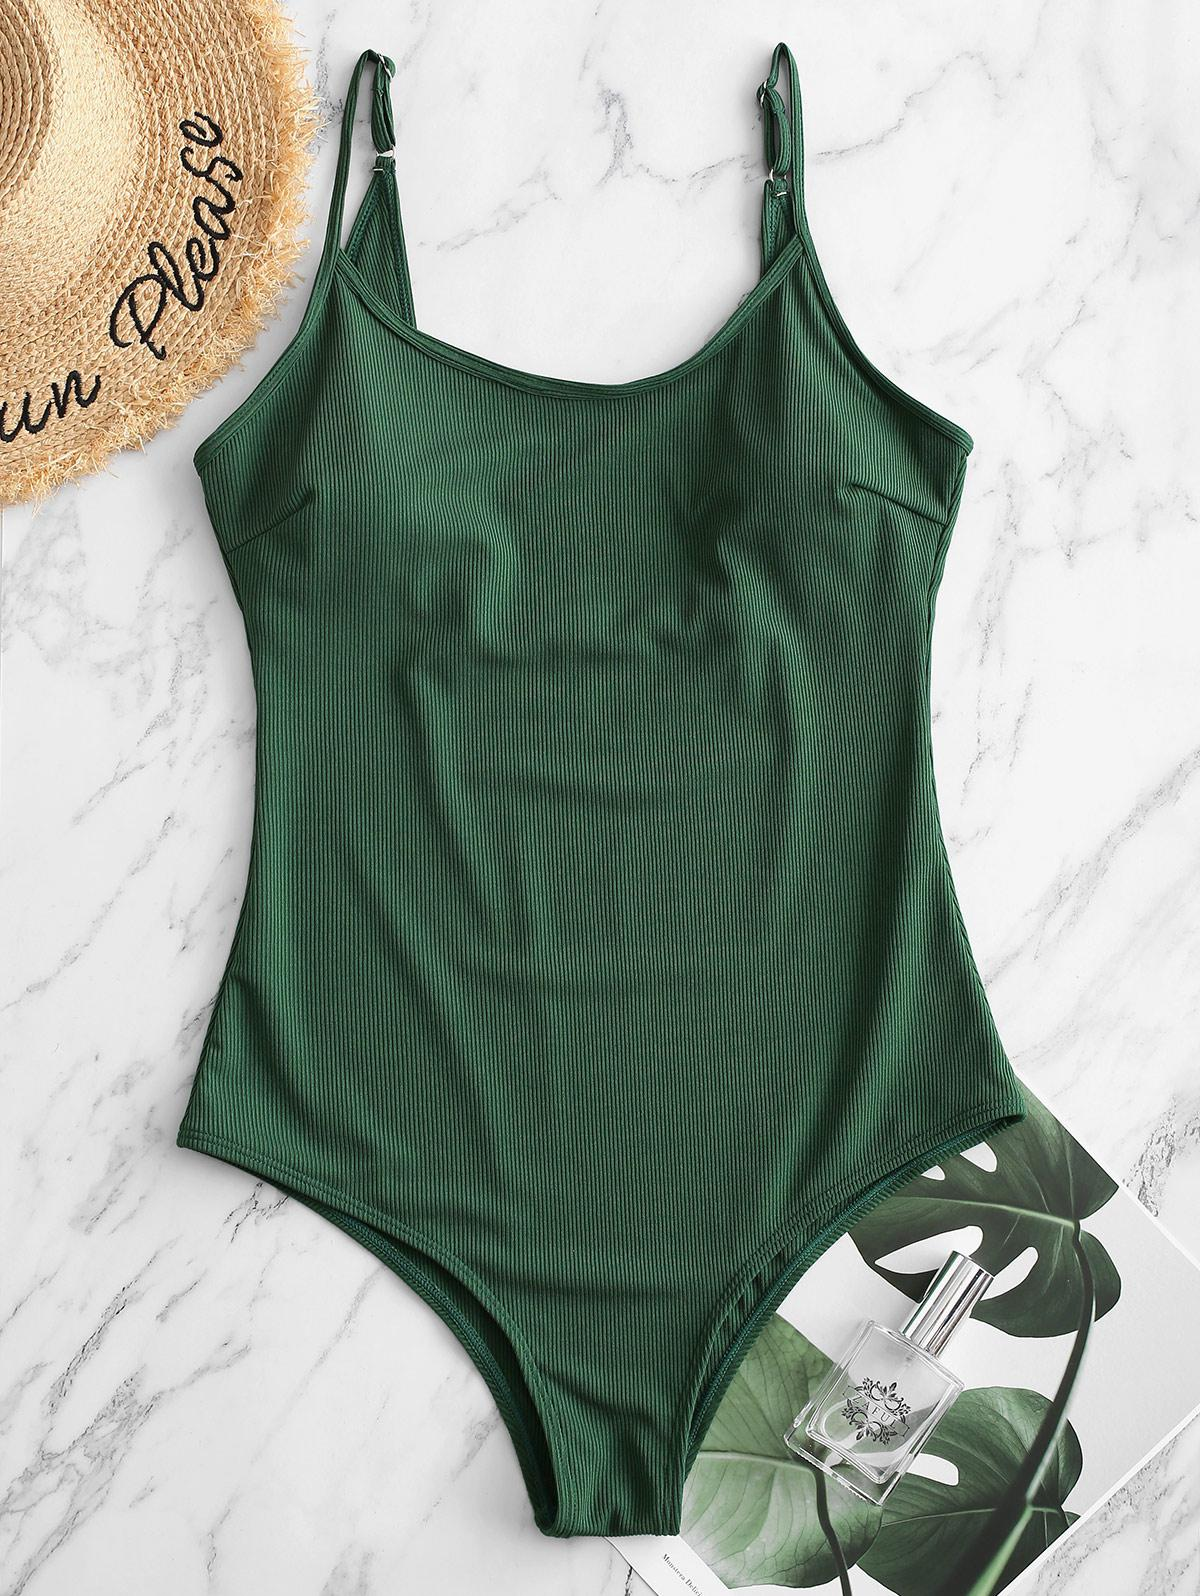 Zaful coupon: ZAFUL Ribbed Cami Backless One-piece Swimsuit